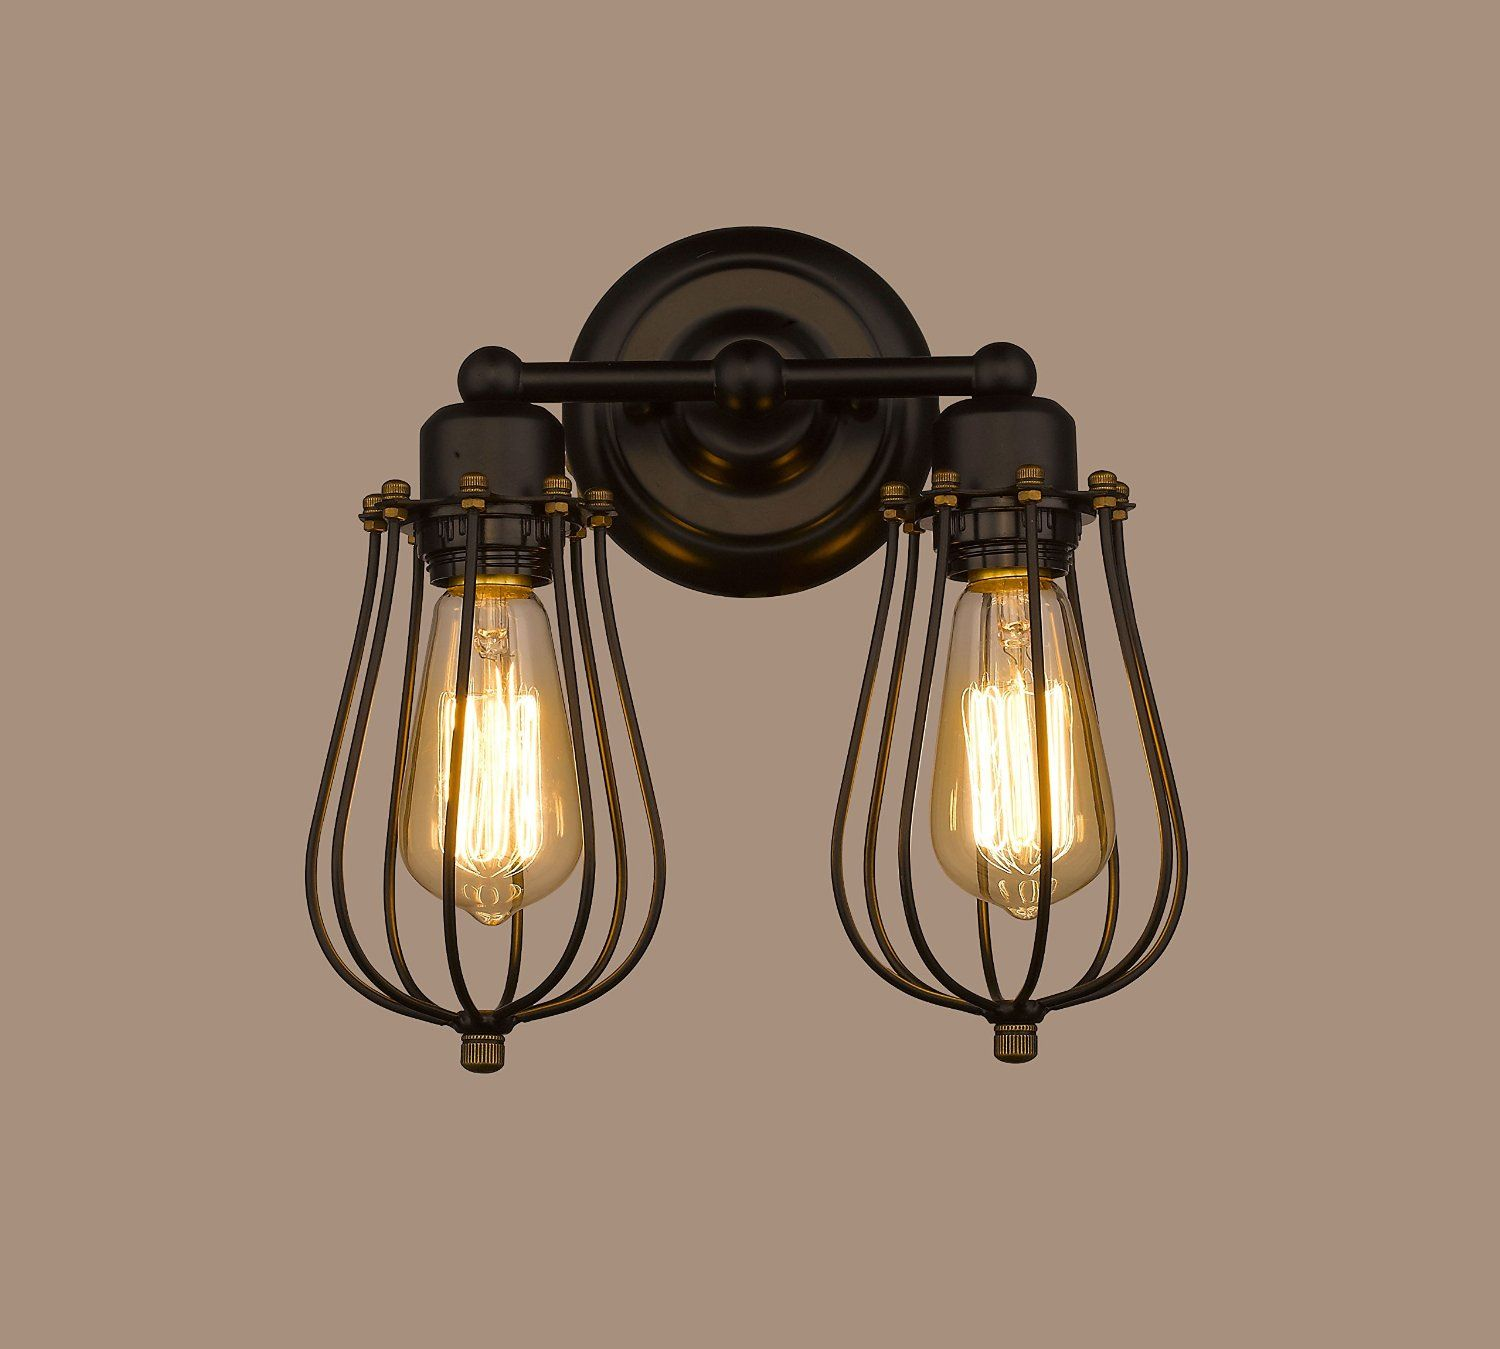 Claxy Ecopower Vintage Style 2 Lights Industrial Black Mini Wire Orlando Cage Retro Sconce Wall Light Brass